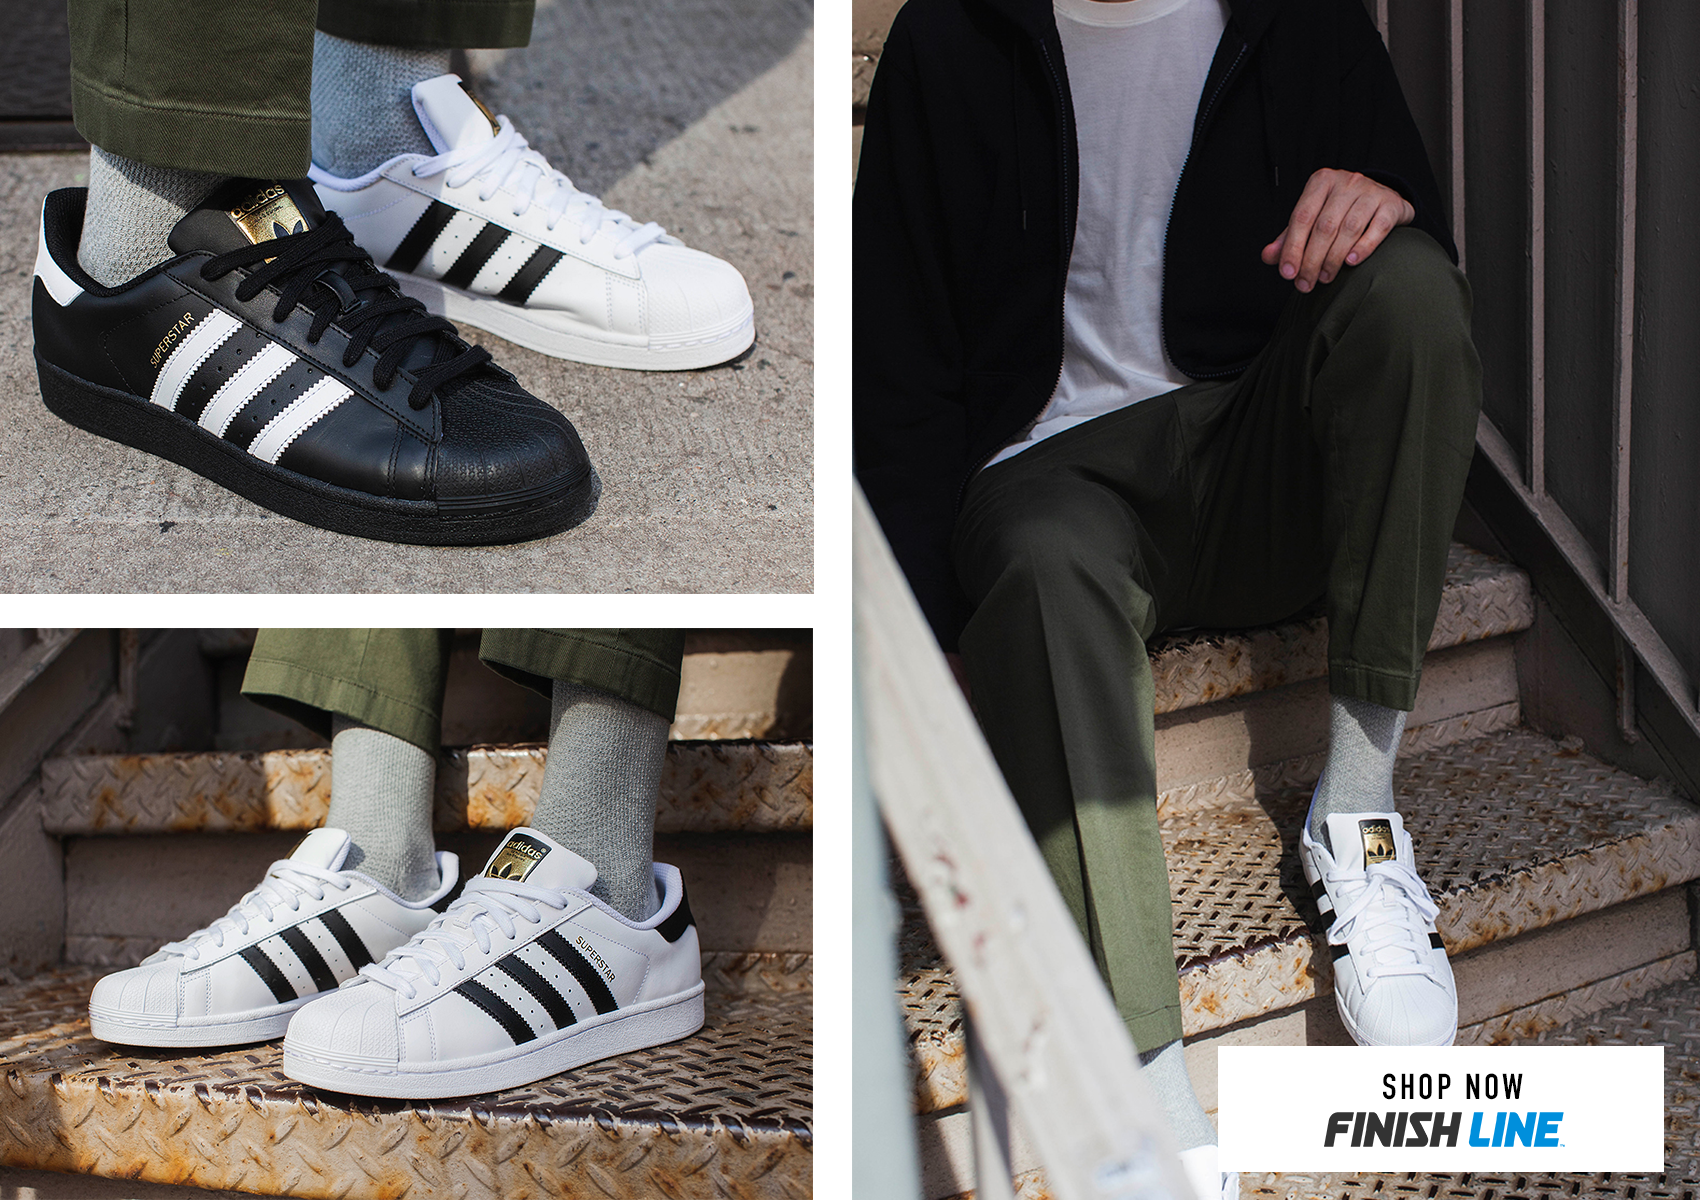 prix compétitif 83aeb a948d Celebrating 50 Years Of adidas Superstar With Finish Line ...